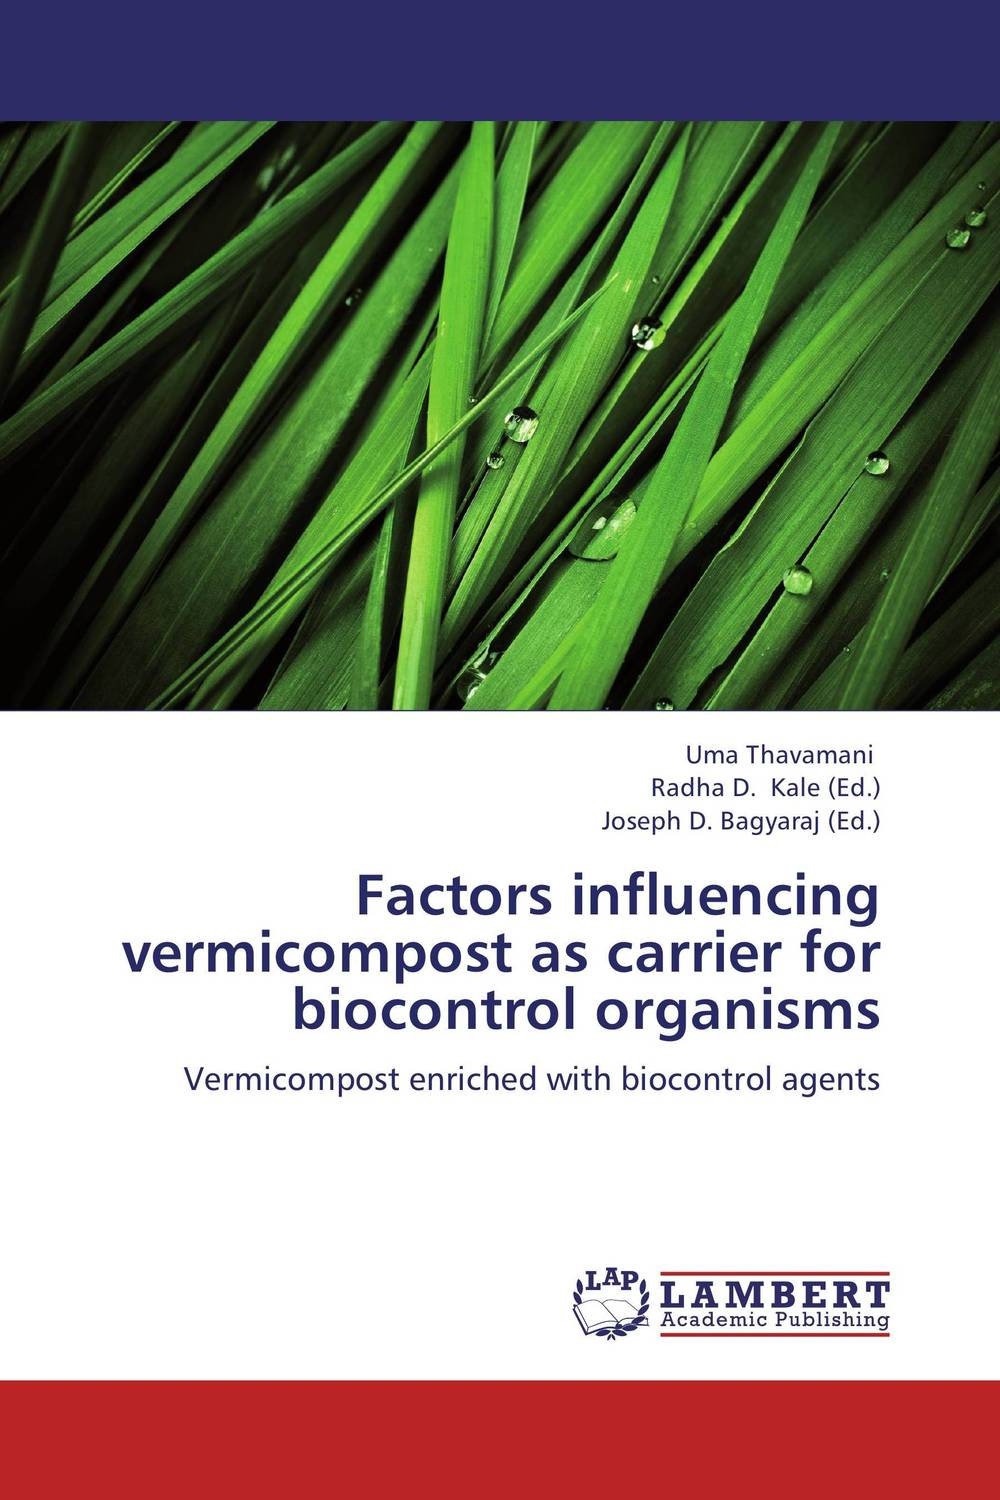 Factors influencing vermicompost as carrier for biocontrol organisms factors influencing the growth of informal rental housing in swaziland